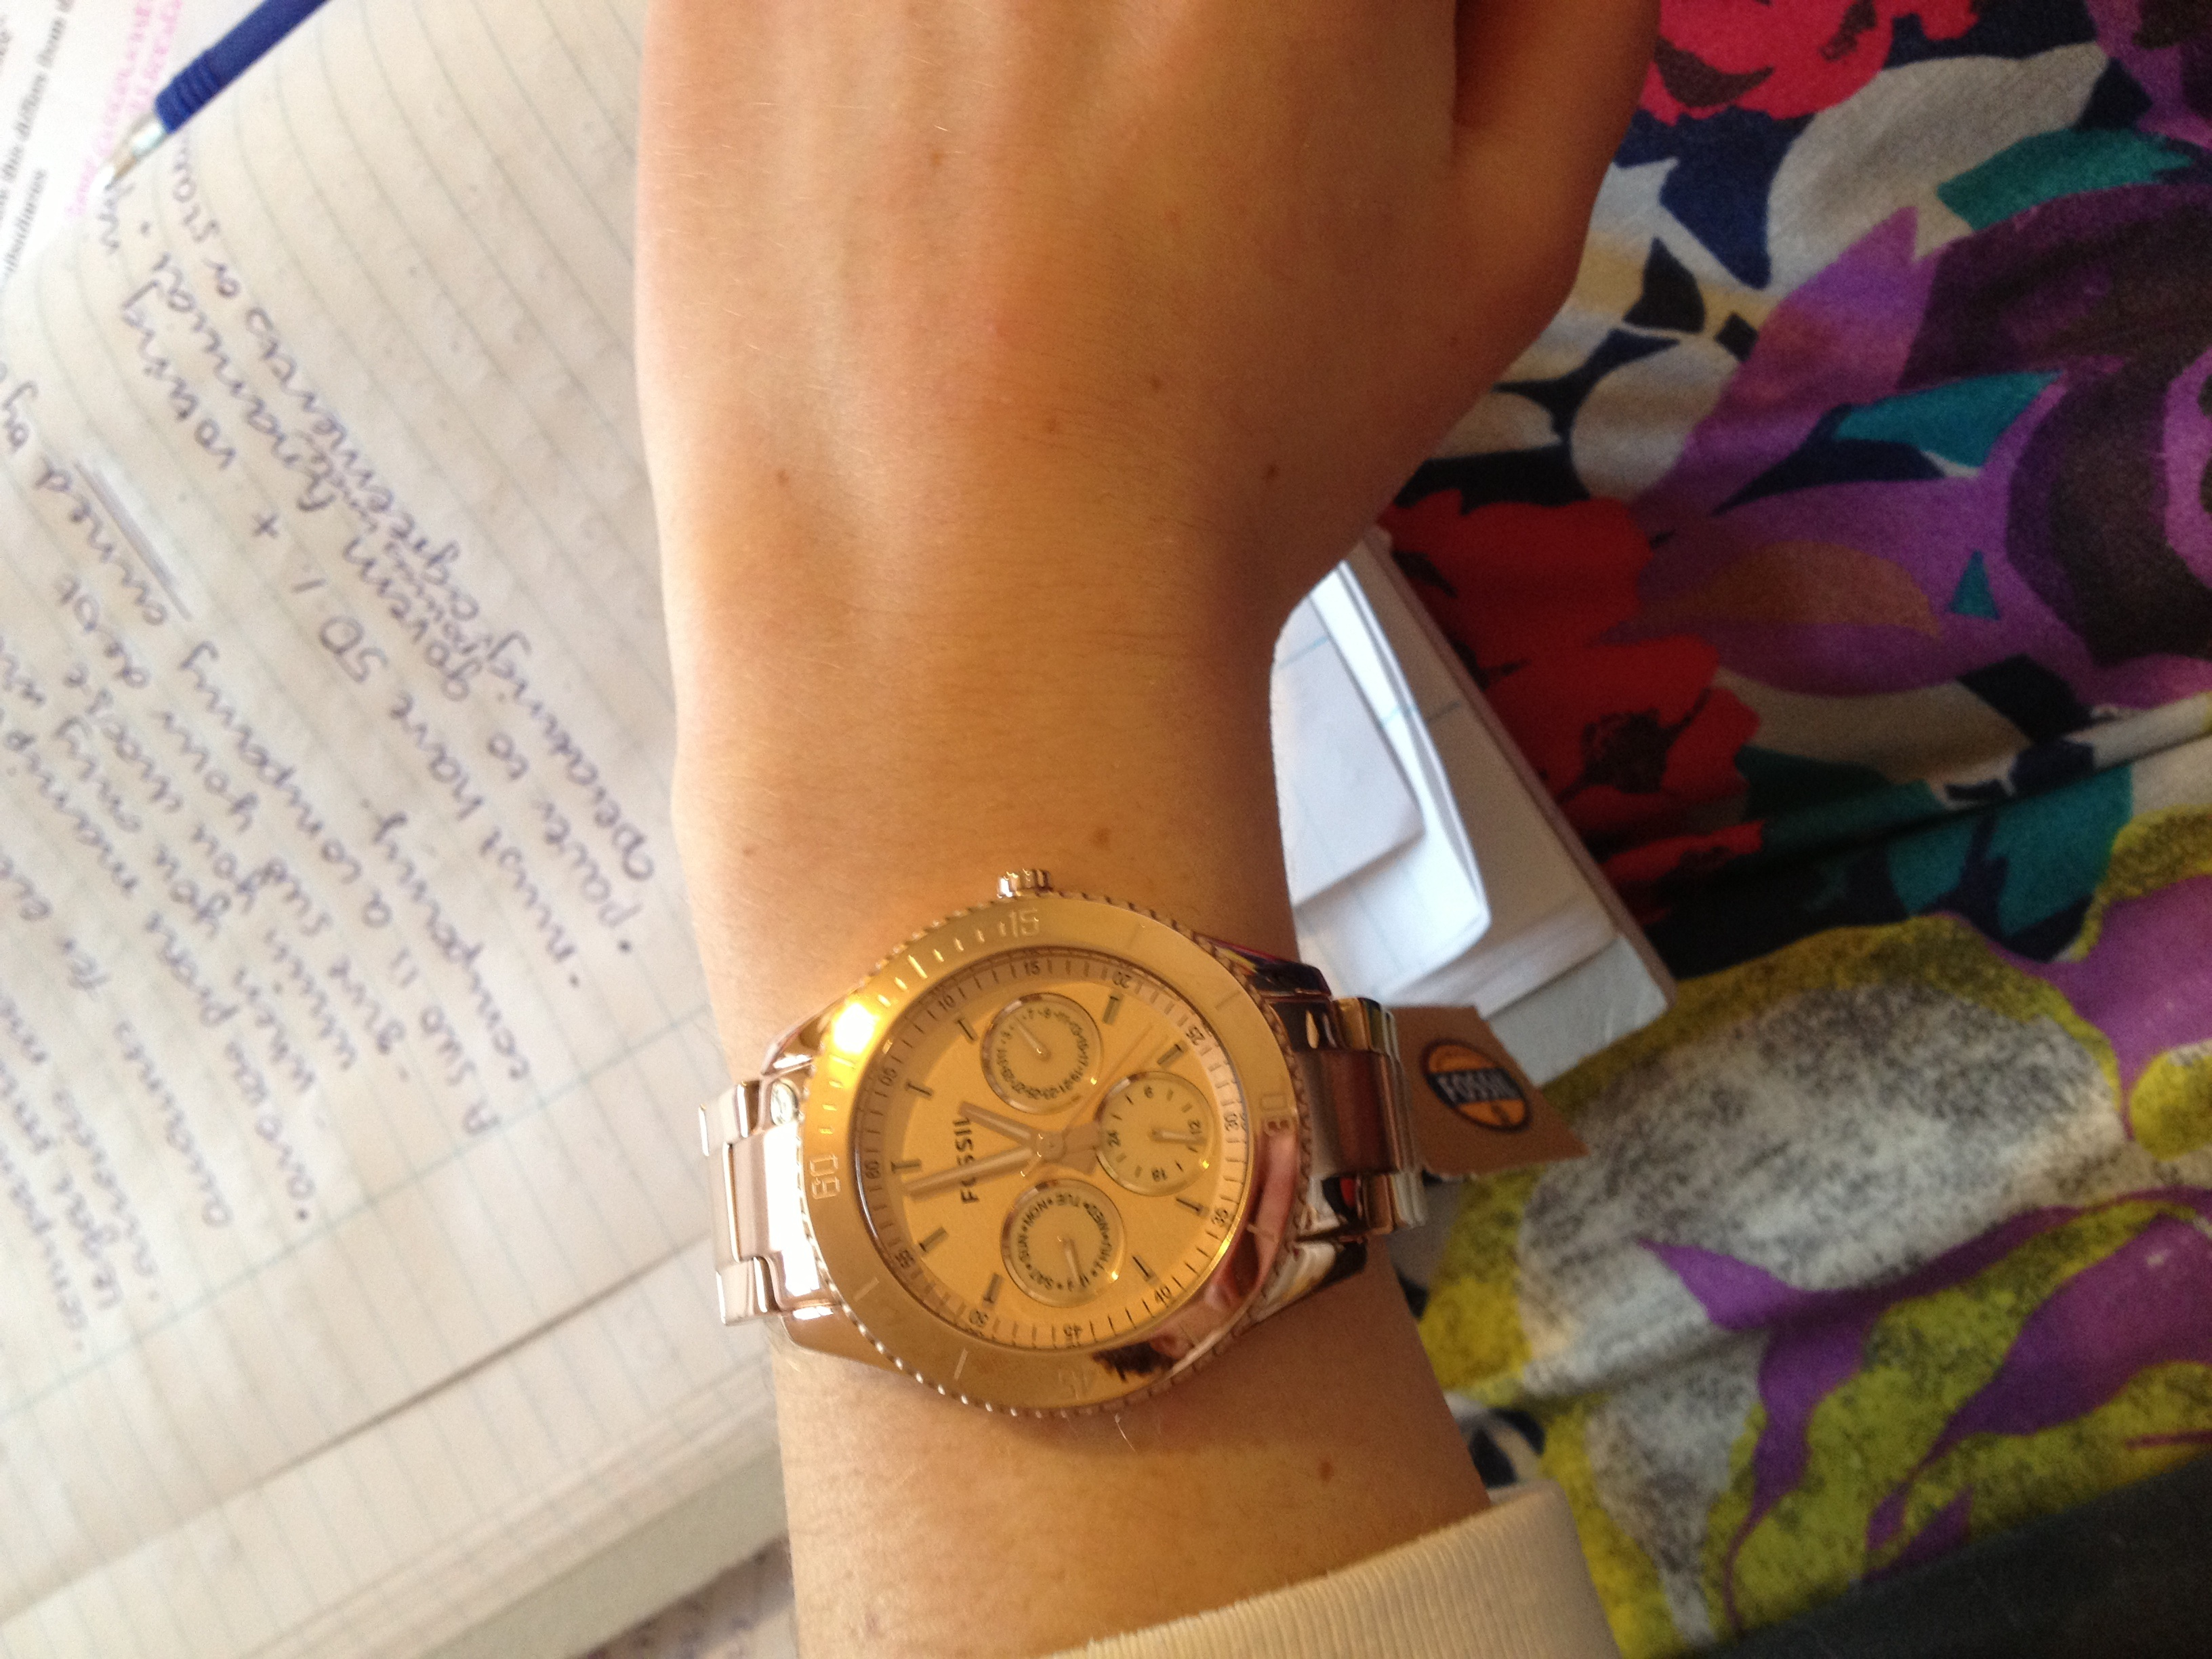 Fossil Rose Gold Colored Watch Excellent Condition Pretty Es3590 Stella Multifunction Tone Stainless Steel The Description Of Says It Has A Champagne Coloured Facing But This Is Not True Ros Colour Same As Strap